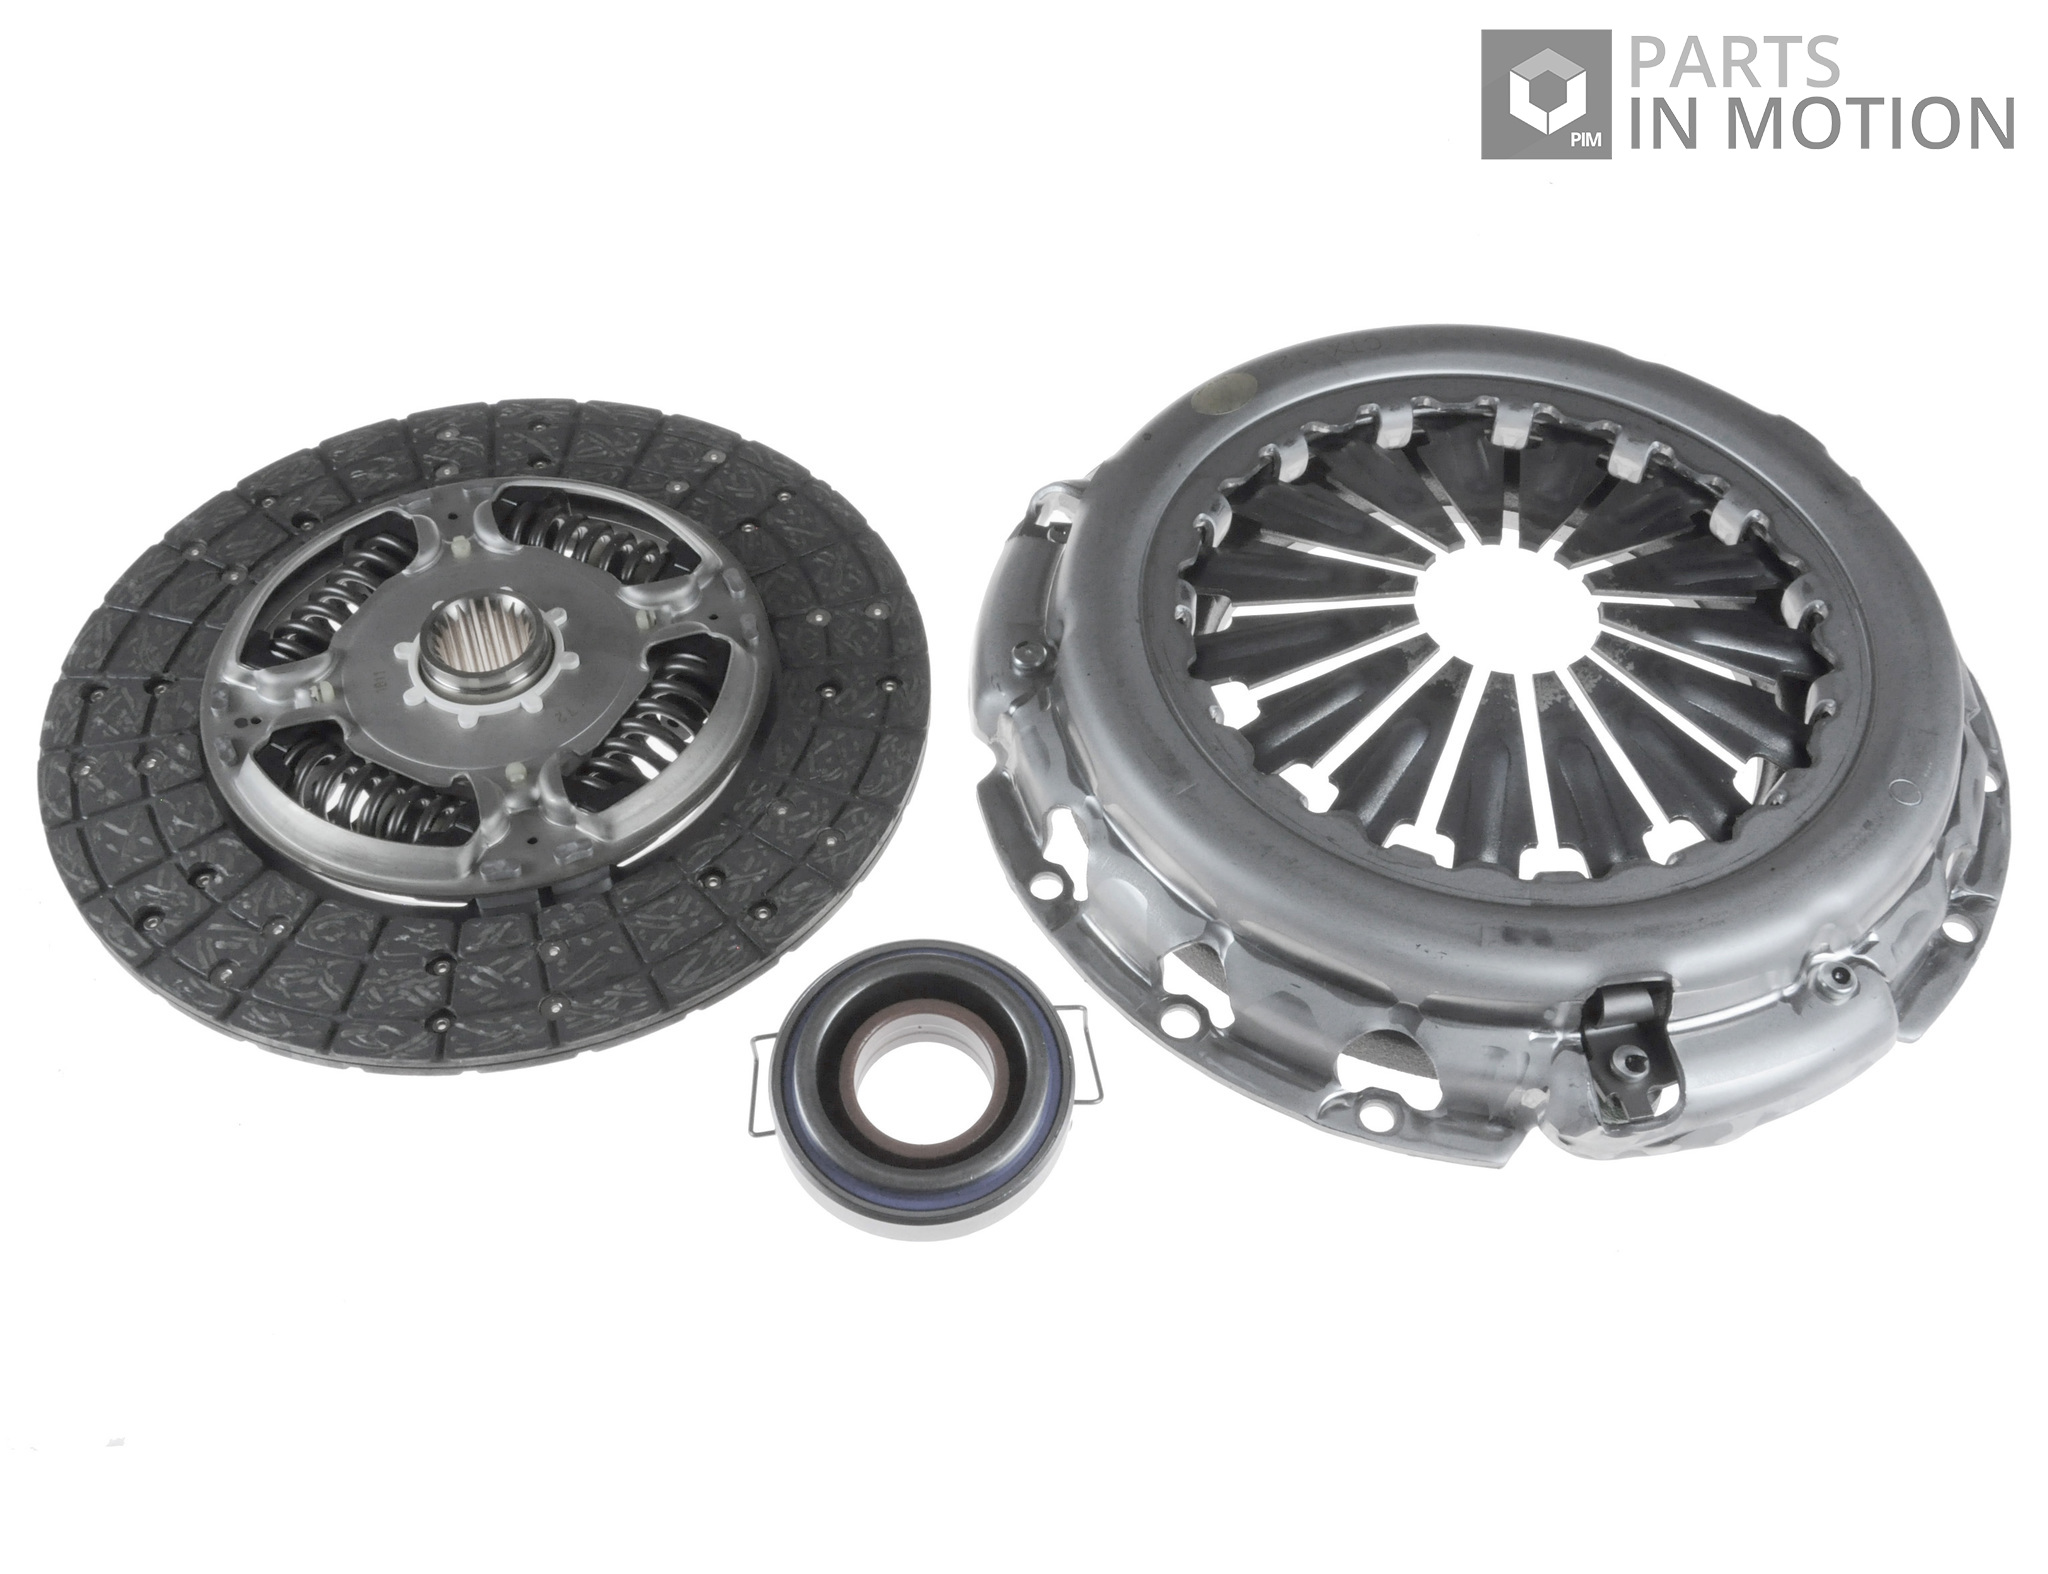 Clutch Kit 3pc Cover+Plate+Releaser fits TOYOTA RAV-4 ACA2 2.0 00 to 05 1AZ-FE